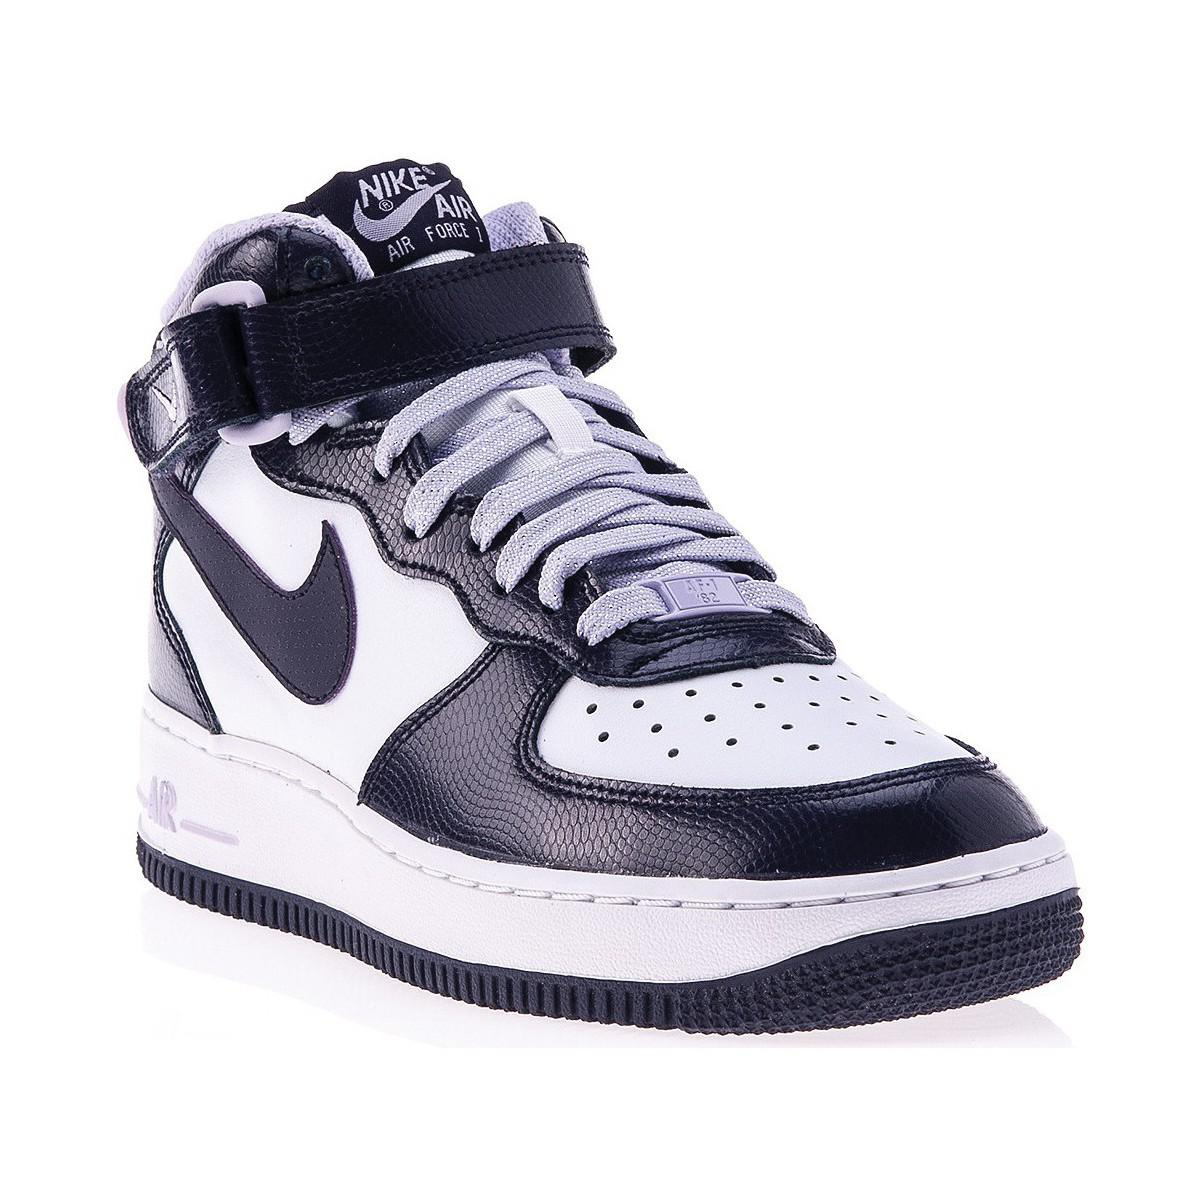 buy online 15b53 21d5d ... canada gallery. previously sold at spartoo womens nike air force 3c500  9c82f